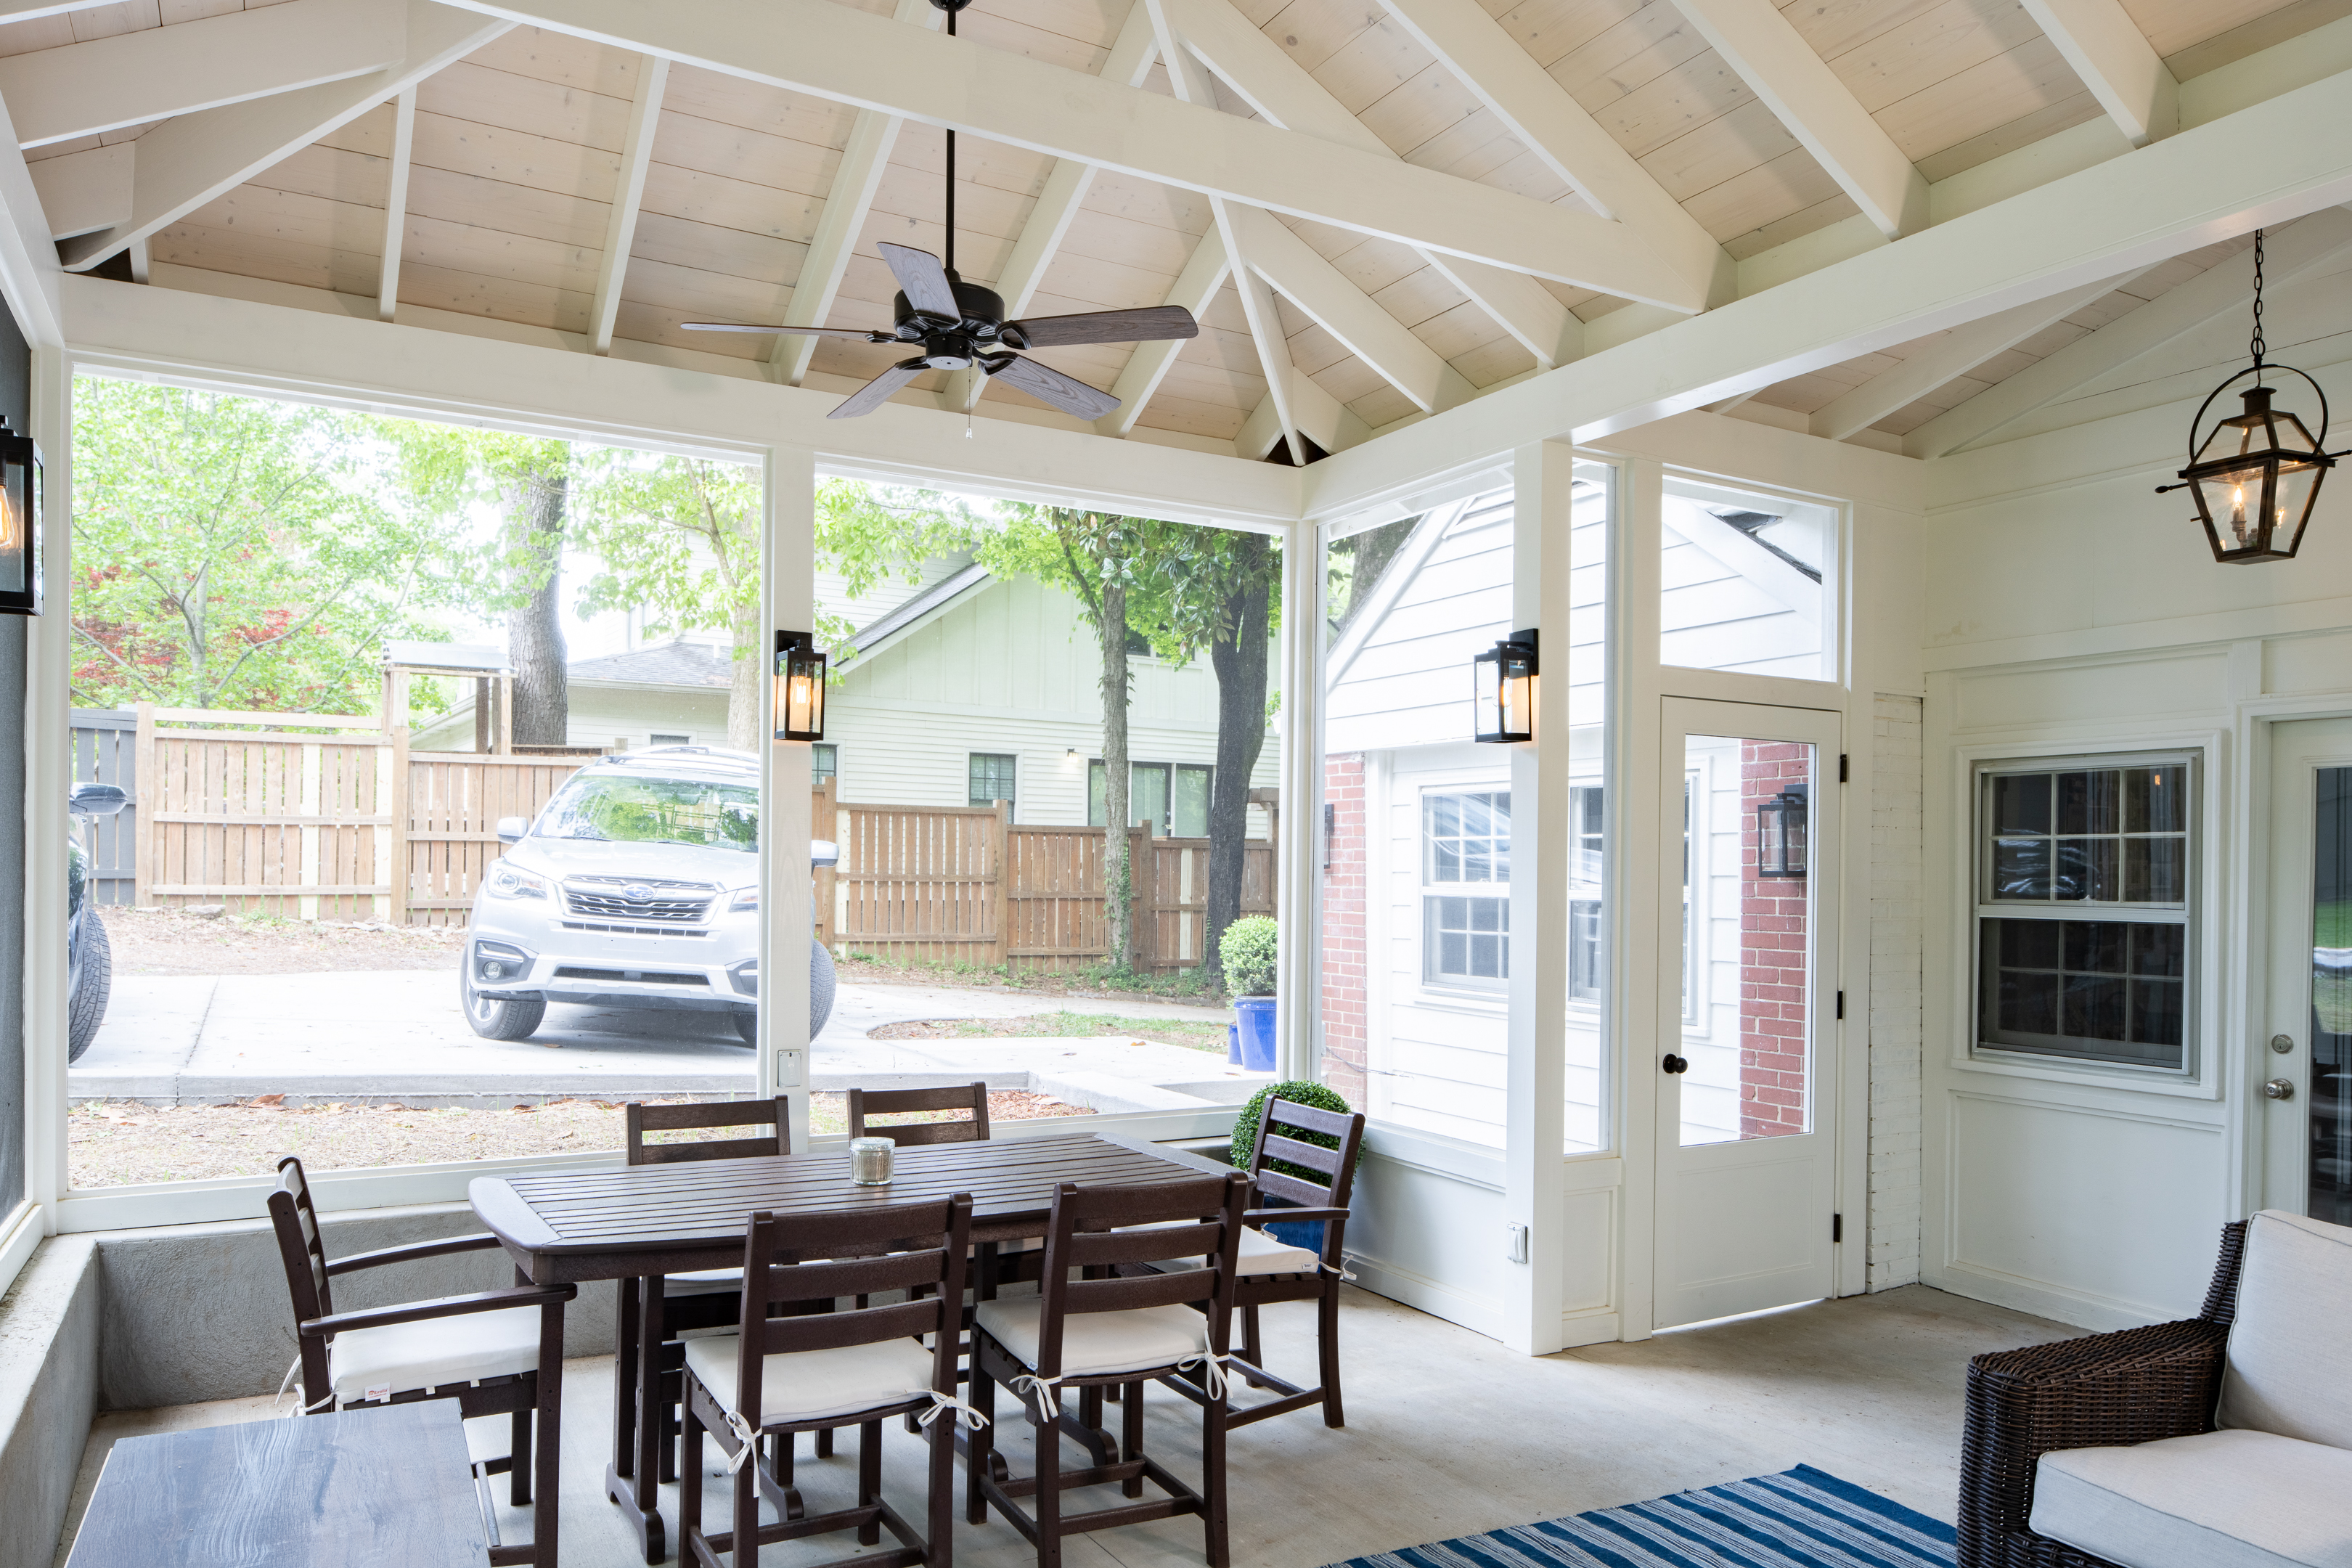 screened porch interior in south Nashville, TN